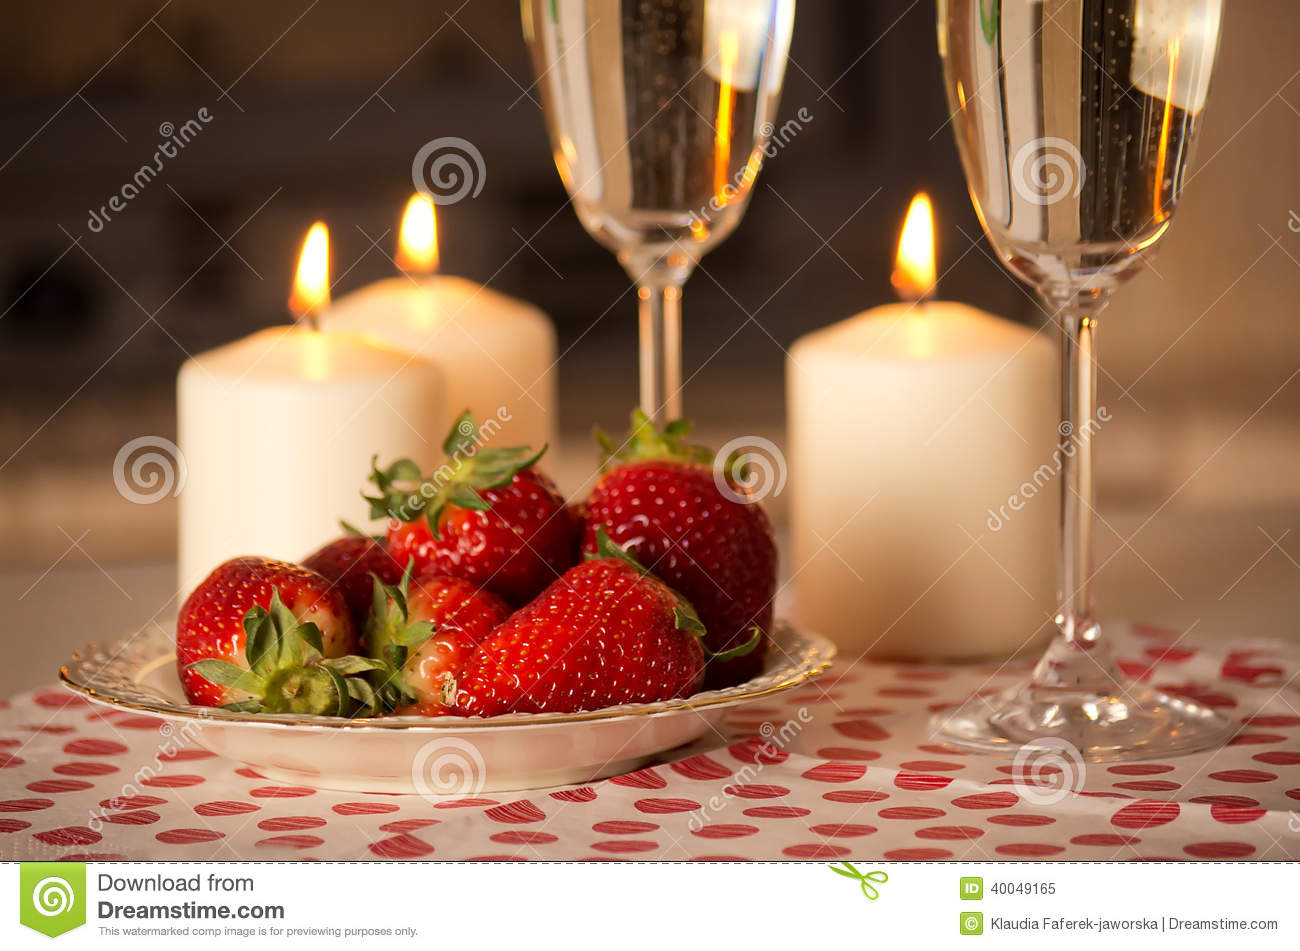 Champagne, Strawberries And Candles. Stock Photo - Image: 40049165